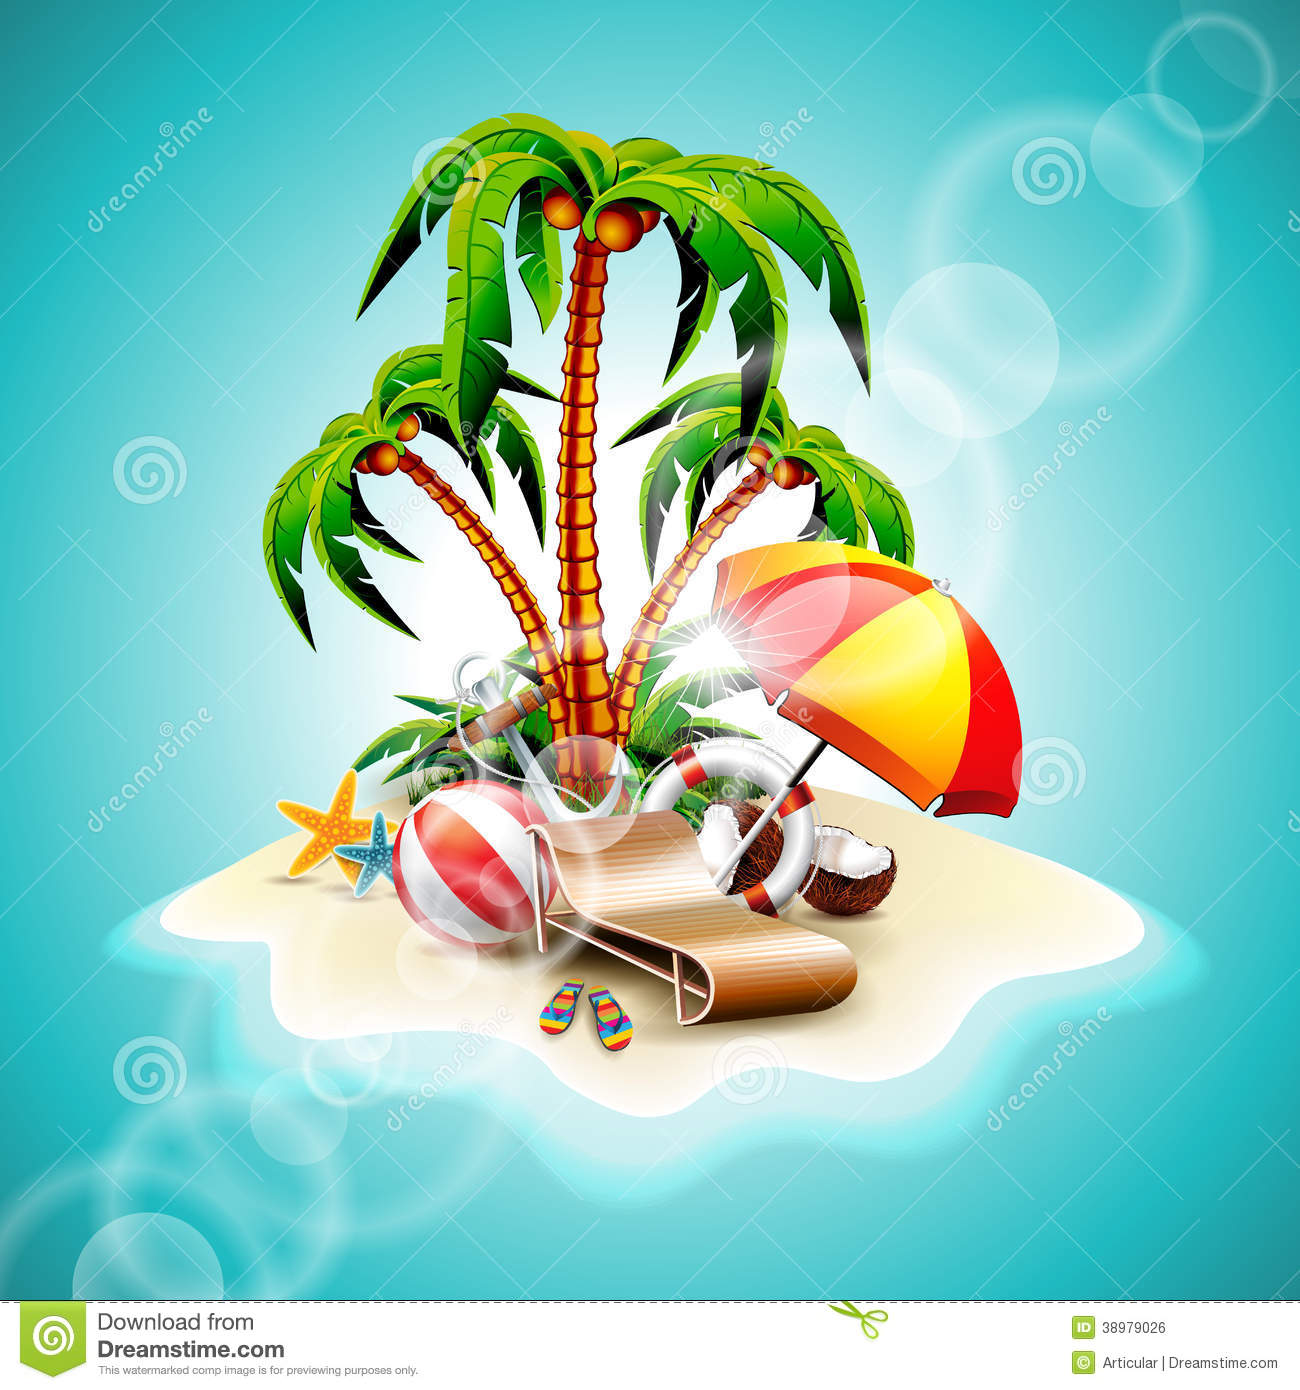 Vector Illustration On A Summer Holiday Theme Stock Vector - Image: 38979026